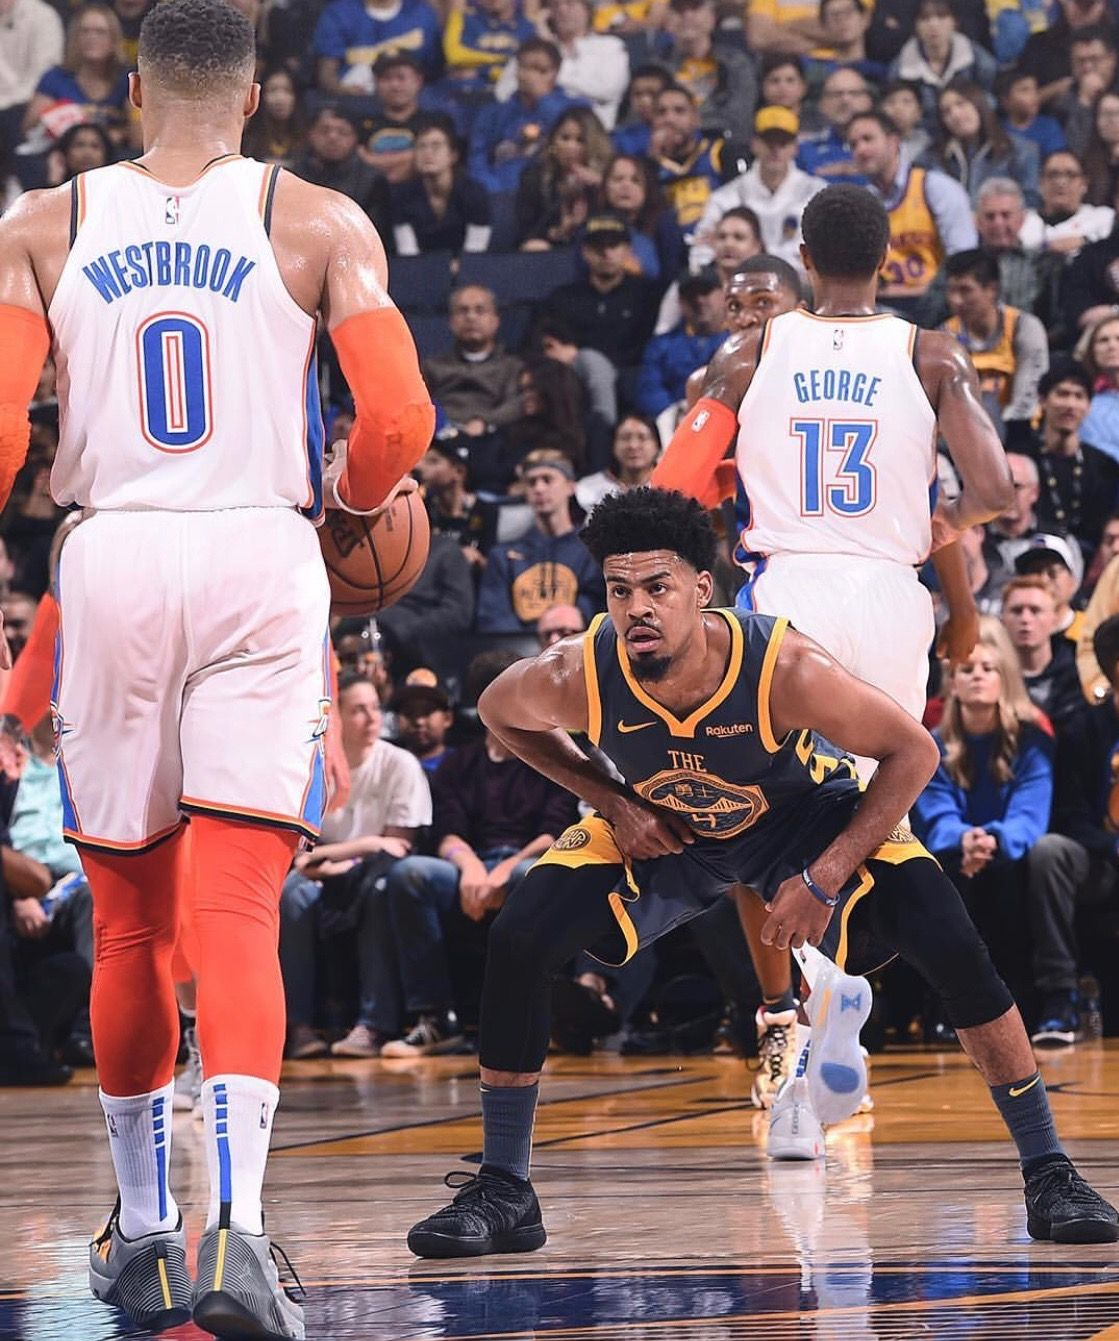 Quinn Cook Of The Golden State Warriors During The Game Against The Oklahoma City Thunder On November 21 2018 Oklahoma City Thunder Golden State Warriors Quinn